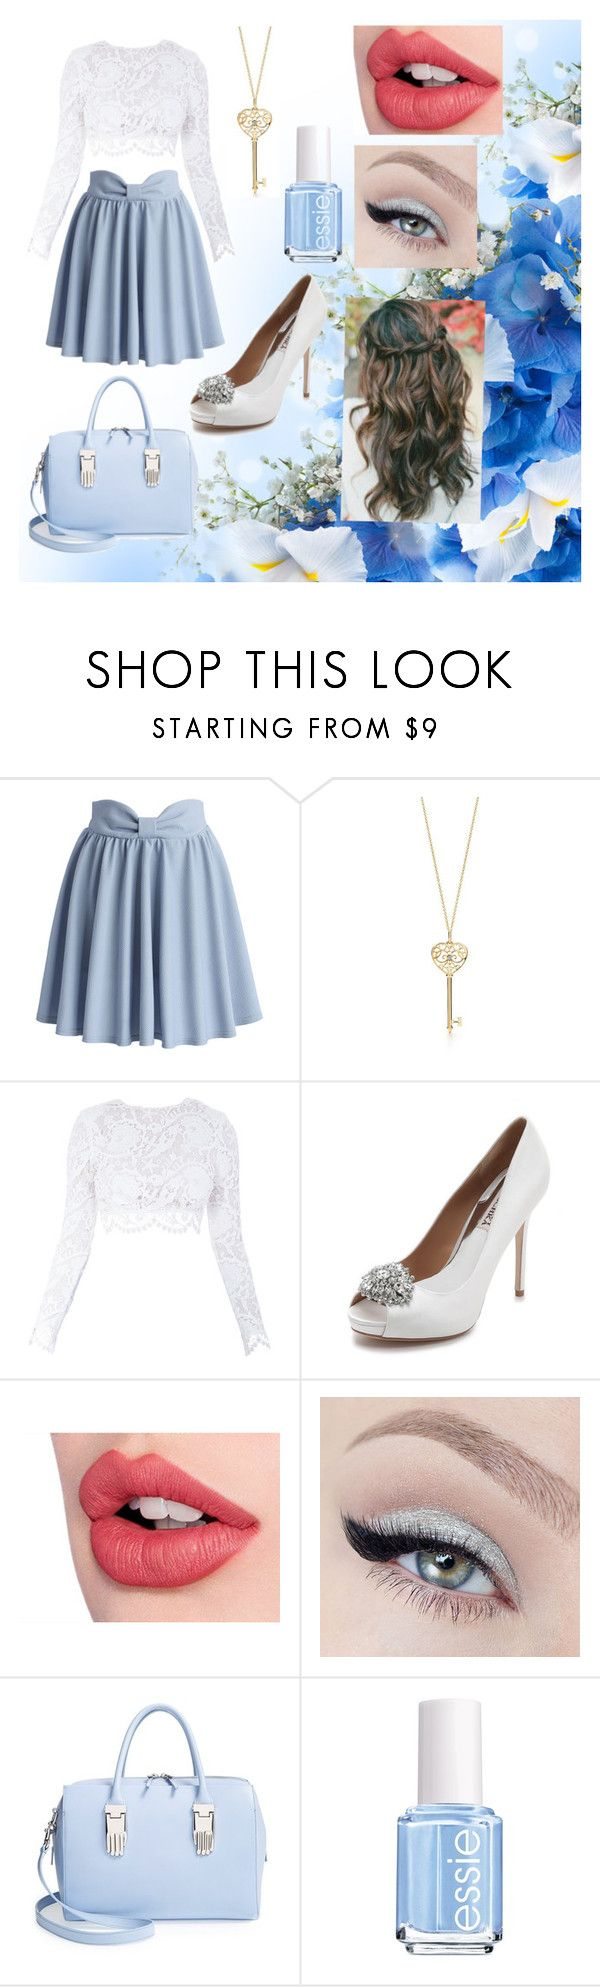 """""""Untitled #22"""" by amymcwray ❤ liked on Polyvore featuring Chicwish, Stone_Cold_Fox, Badgley Mischka, Charlotte Tilbury, Opening Ceremony and Essie"""